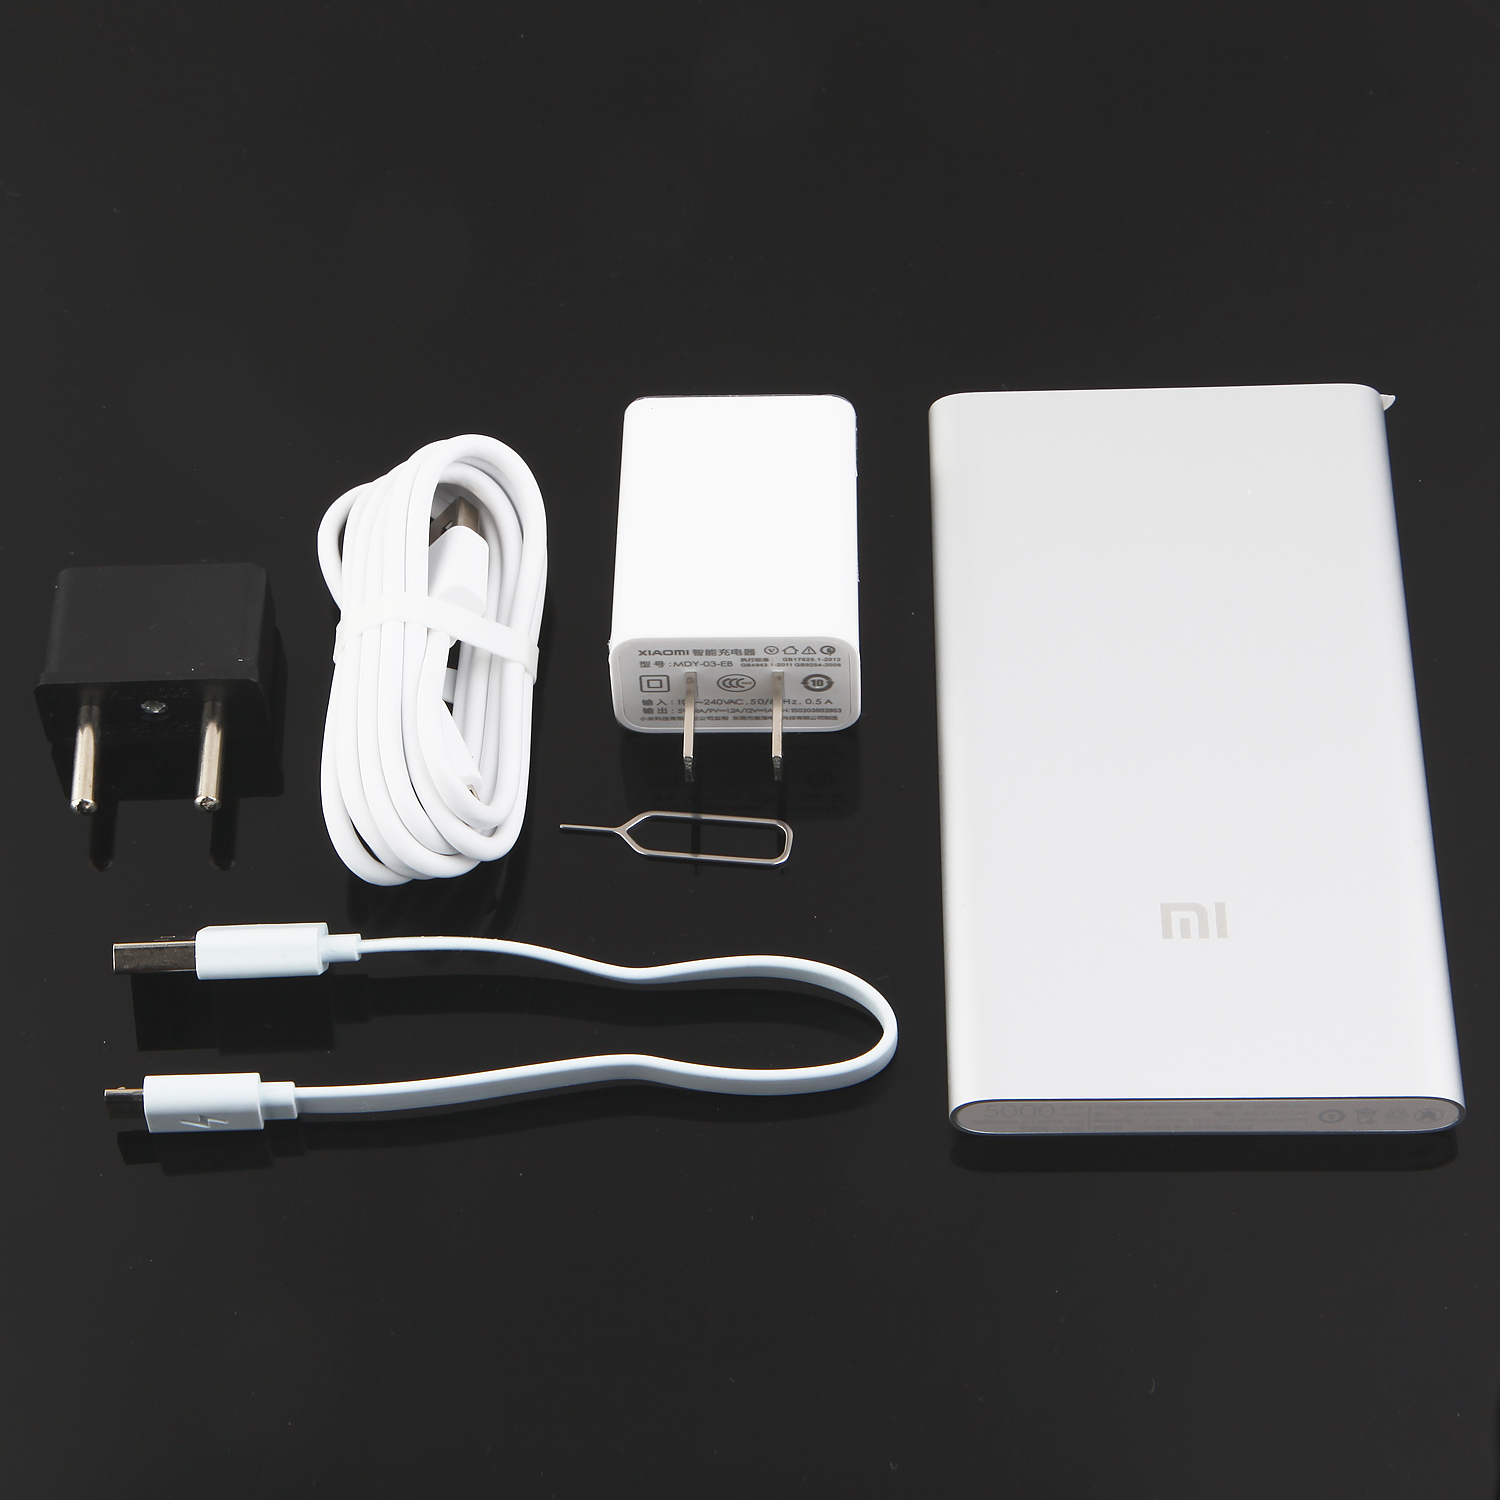 XIAOMI MI Note 4G LTE Snapdragon 801 2.5GHz 3GB 16GB 5.7 Inch + 5000mAh Power Bank